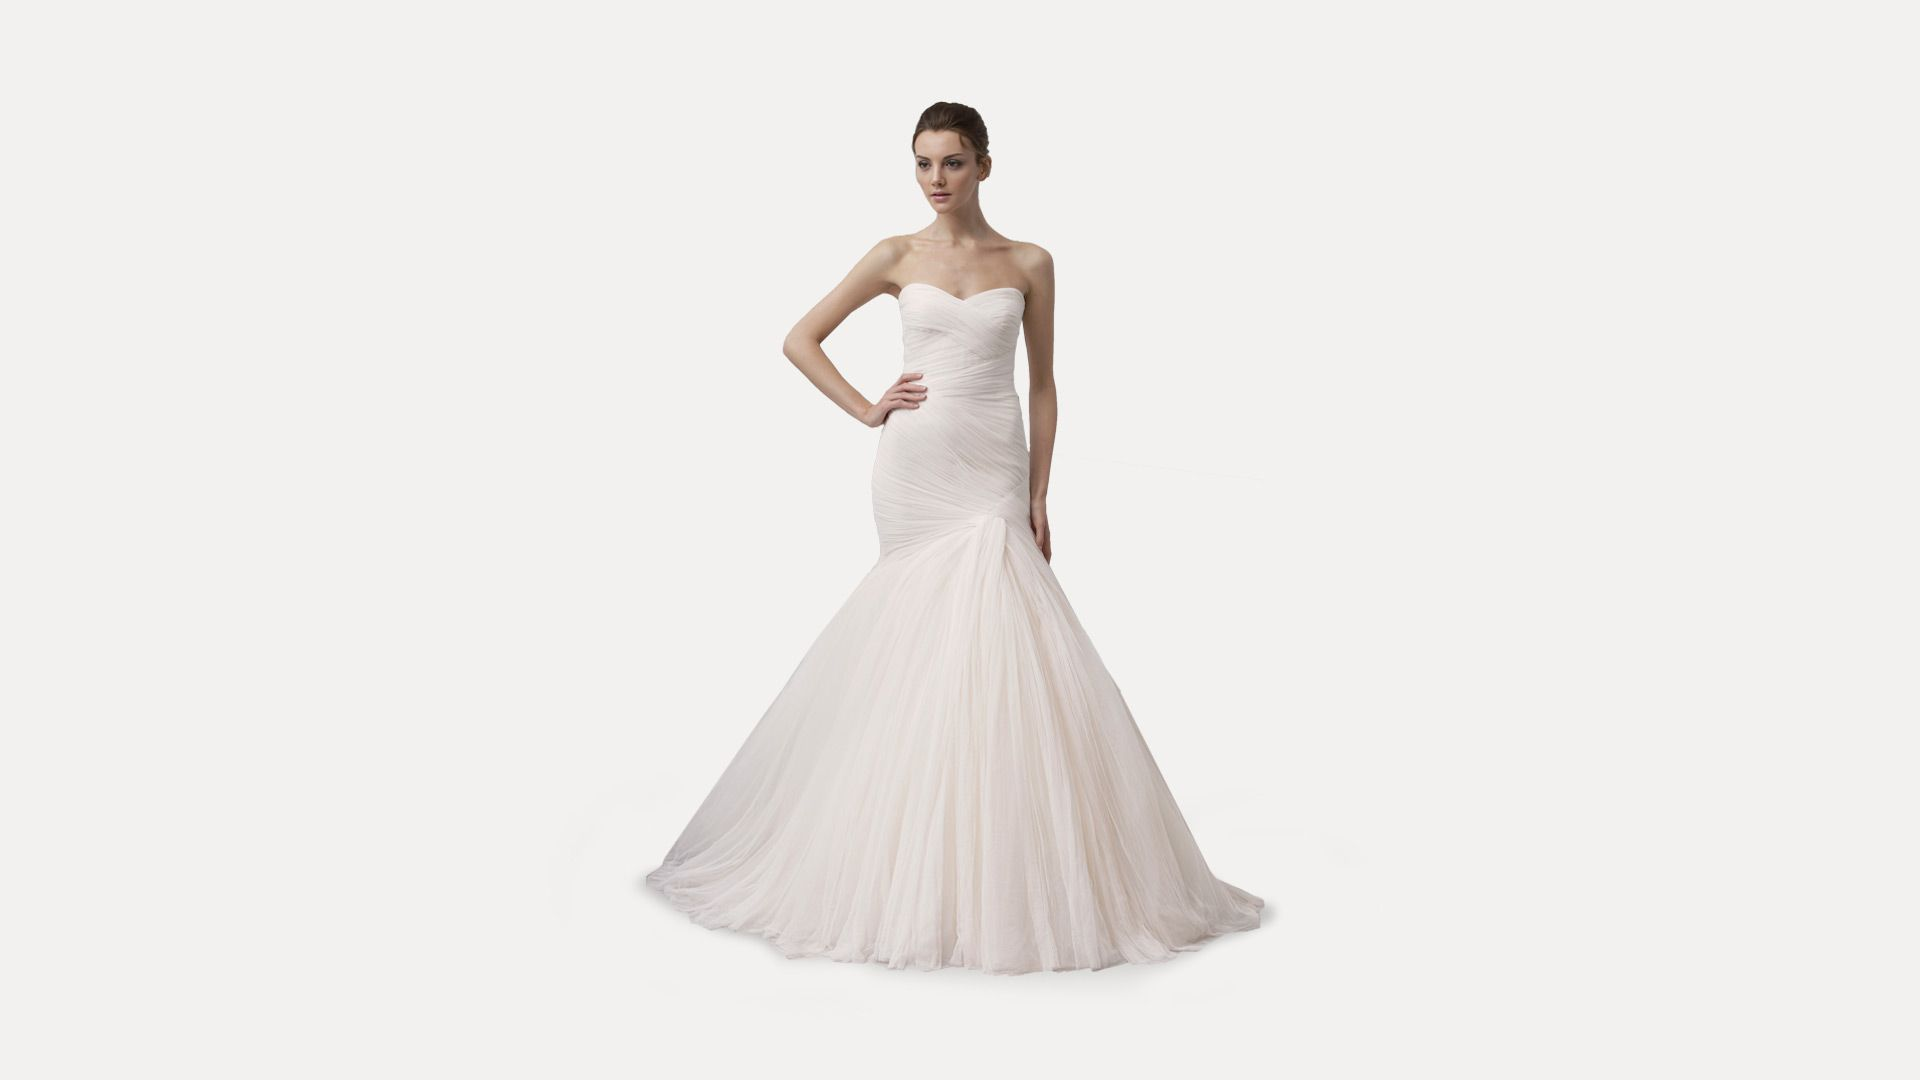 Cheap Wedding Gowns Toronto: Monique Lhuillier Forever - Blush Spanish Tulle